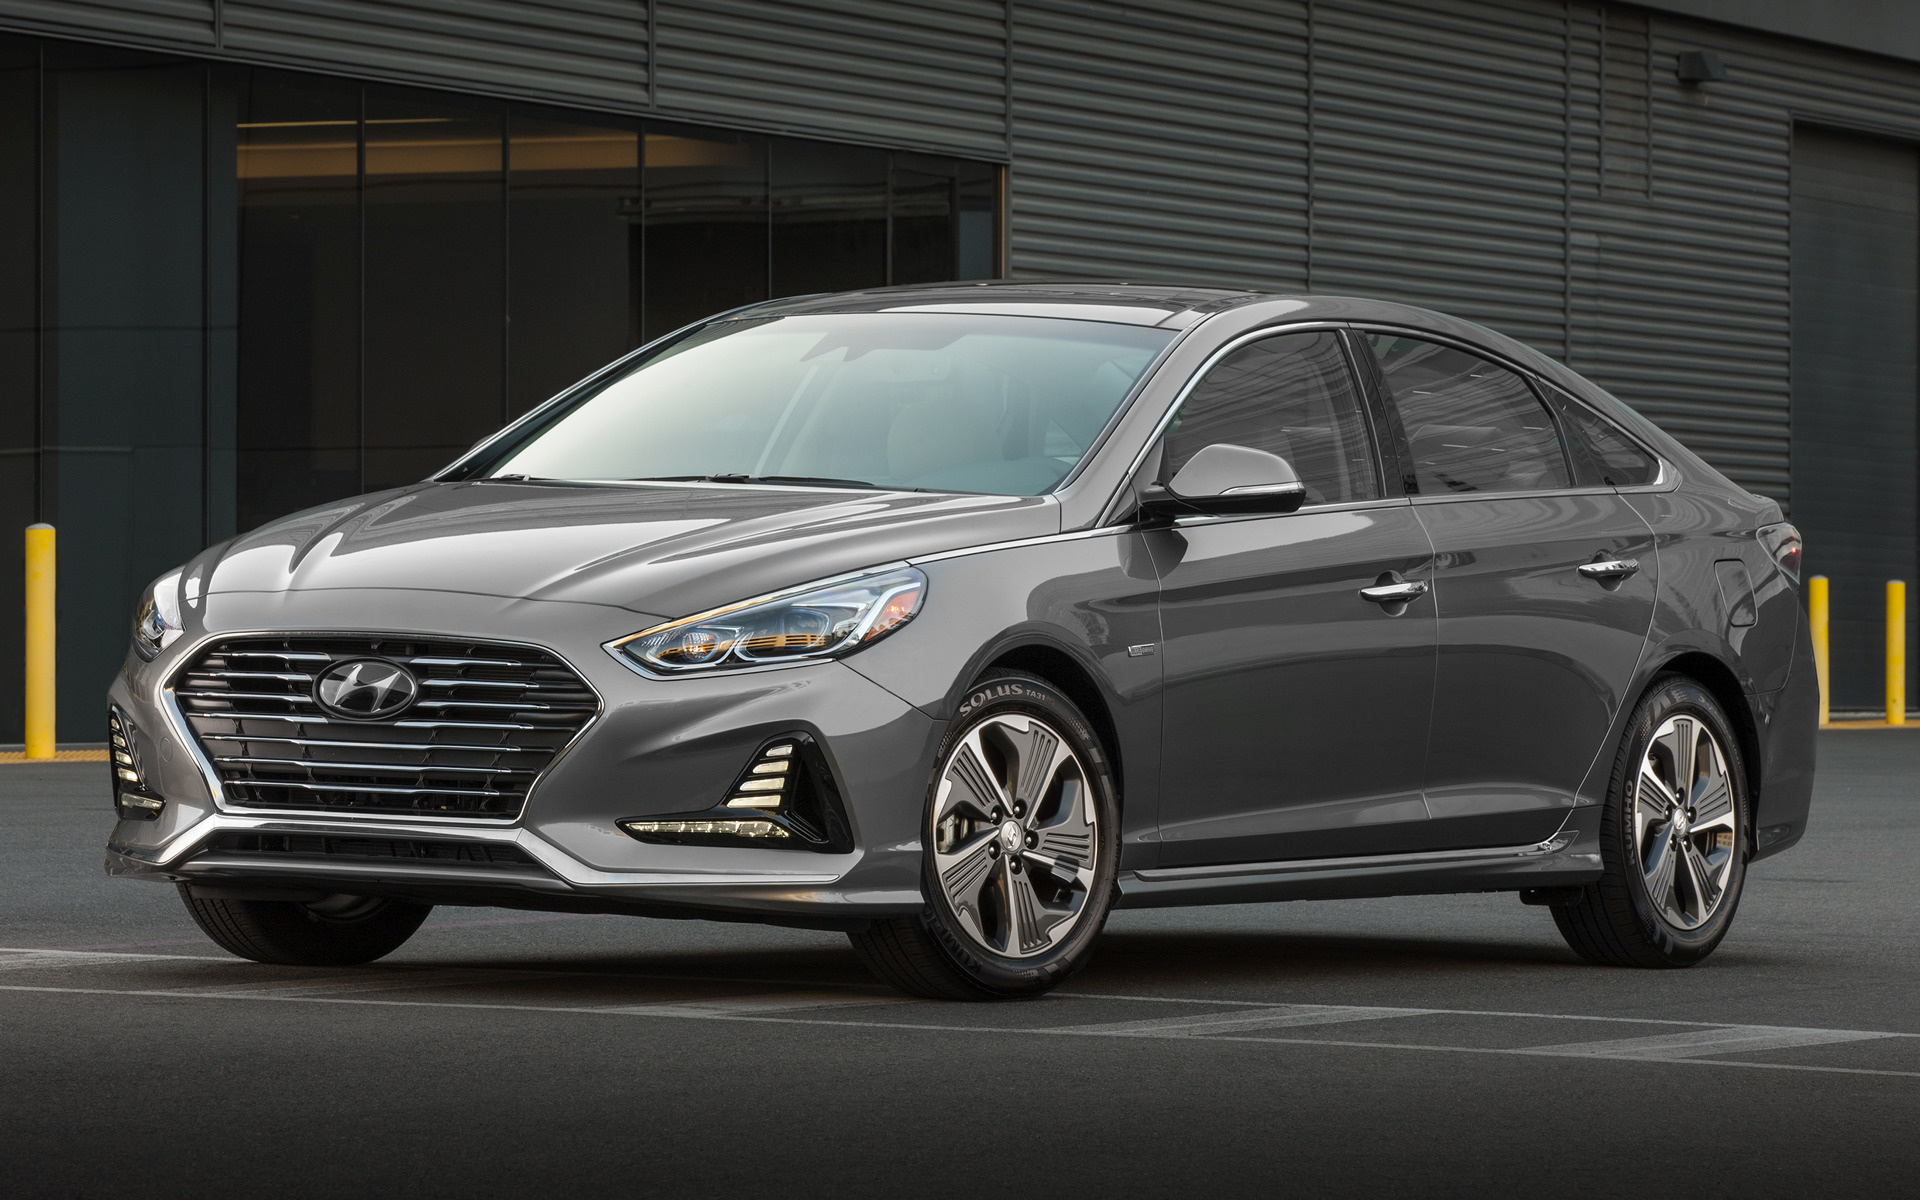 2018 Hyundai Sonata Hybrid Wallpapers And Hd Images